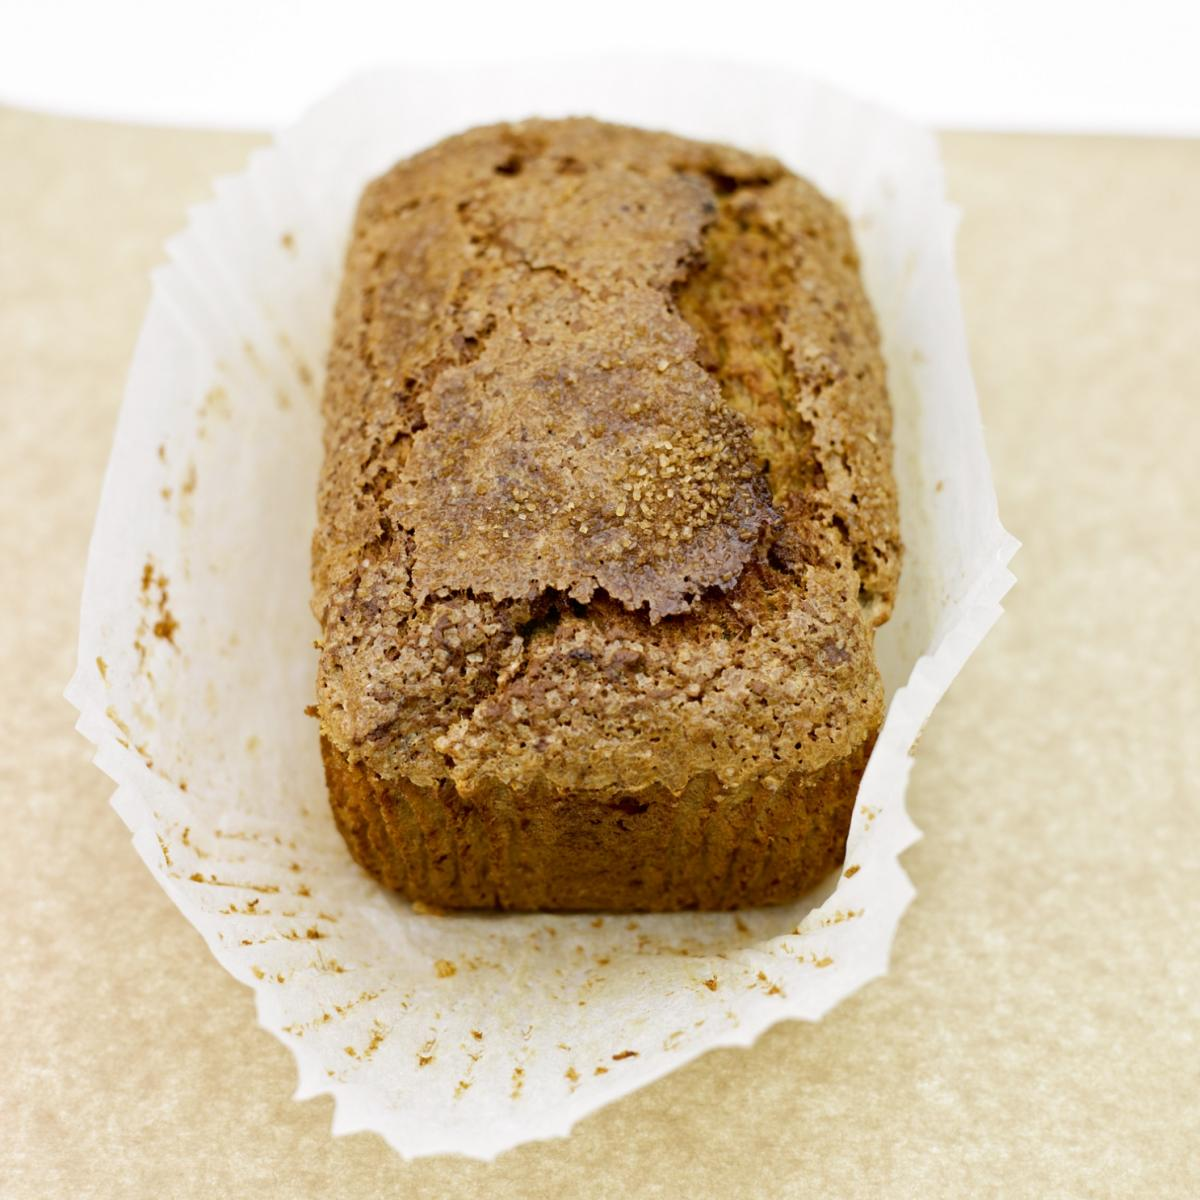 A picture of Delia's Banana and Walnut Loaf recipe